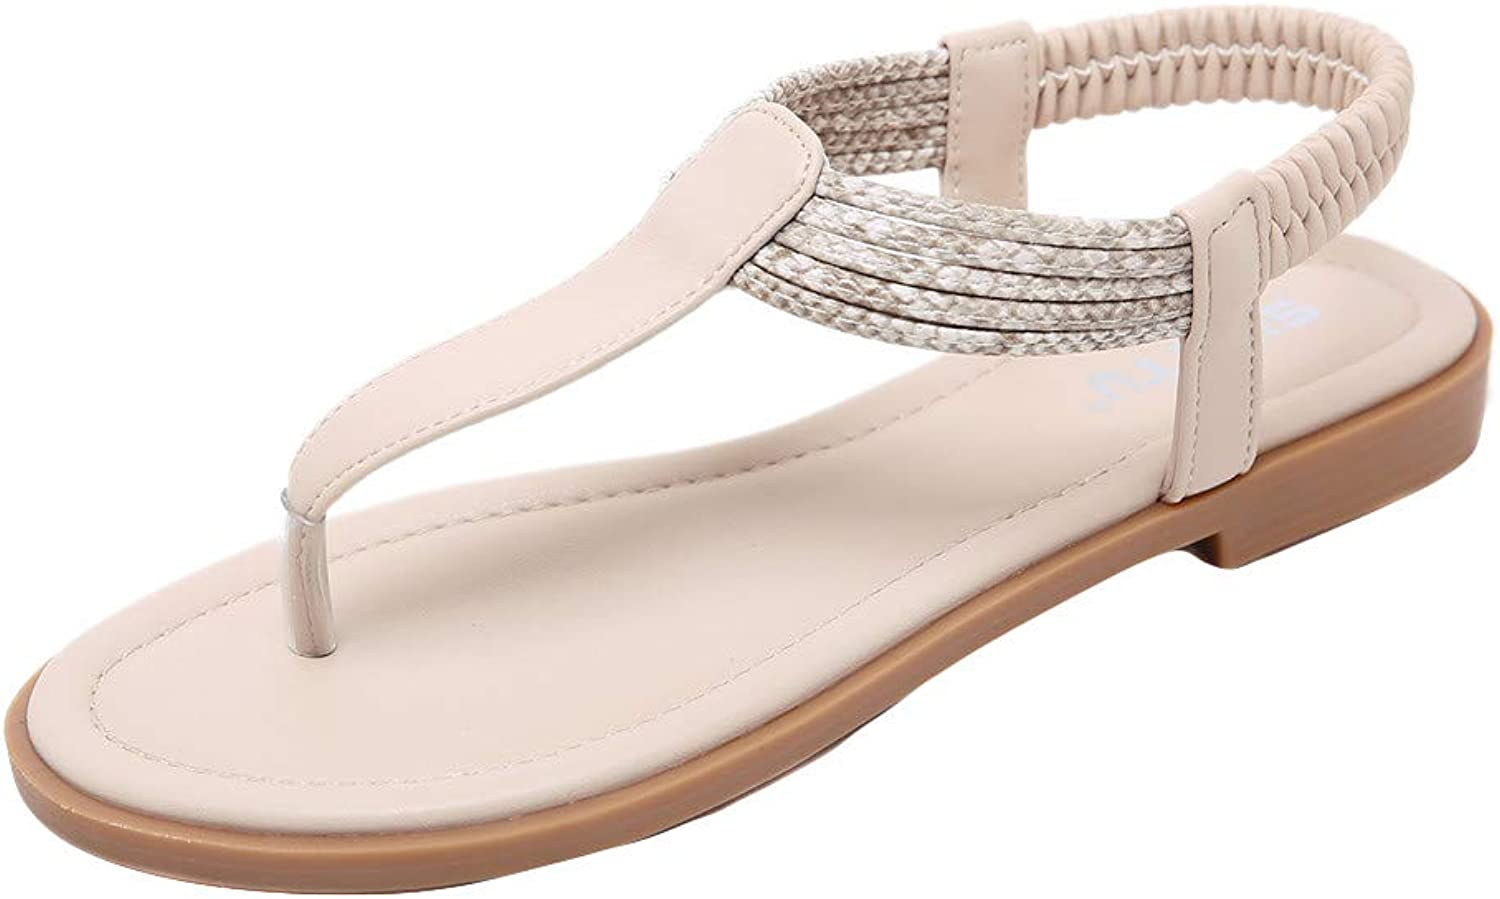 Xinantime Women's Summer Clip Toe Sandals T-Strap Thong Sandals with Low Wedge Slingback Flat Sandals